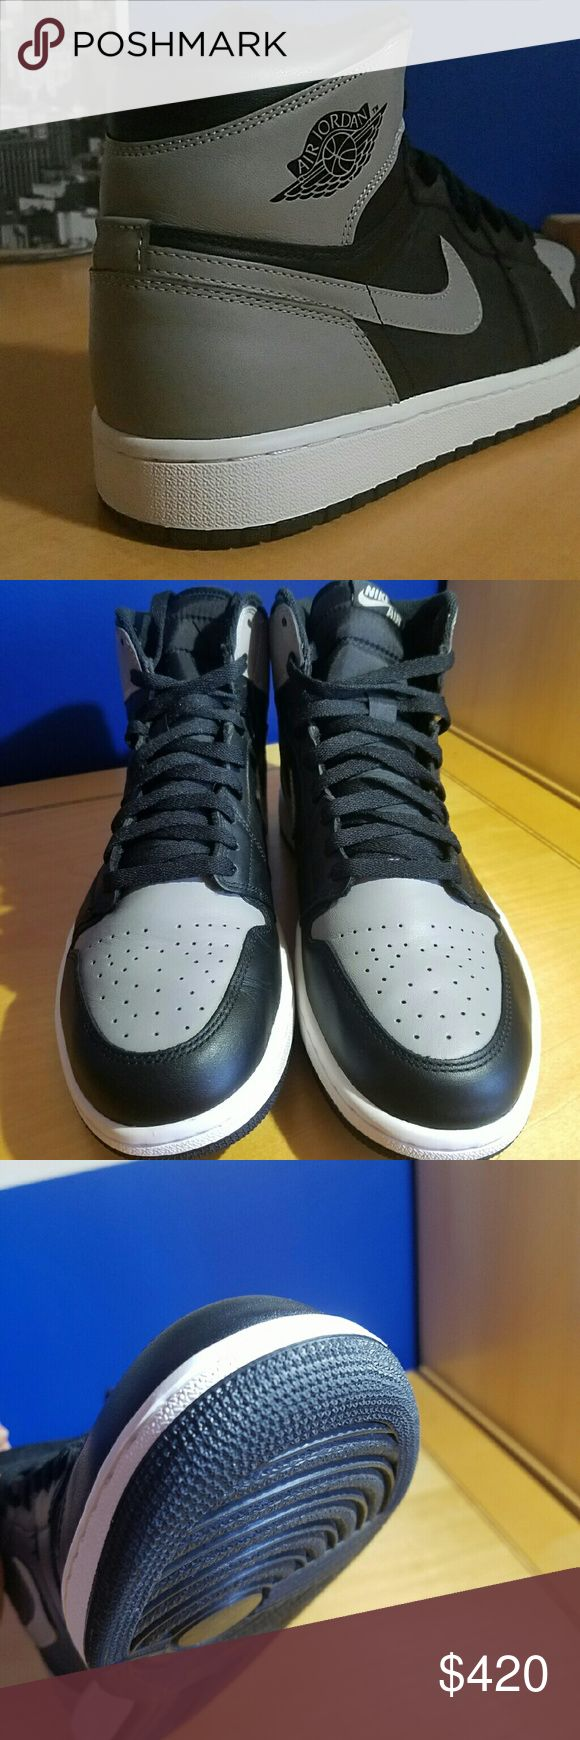 Air Jordan 1 Retro High OG shadow 100% Authentic Jordan 1 Shadow. Worn once black and grey leather Nike Shoes Sneakers